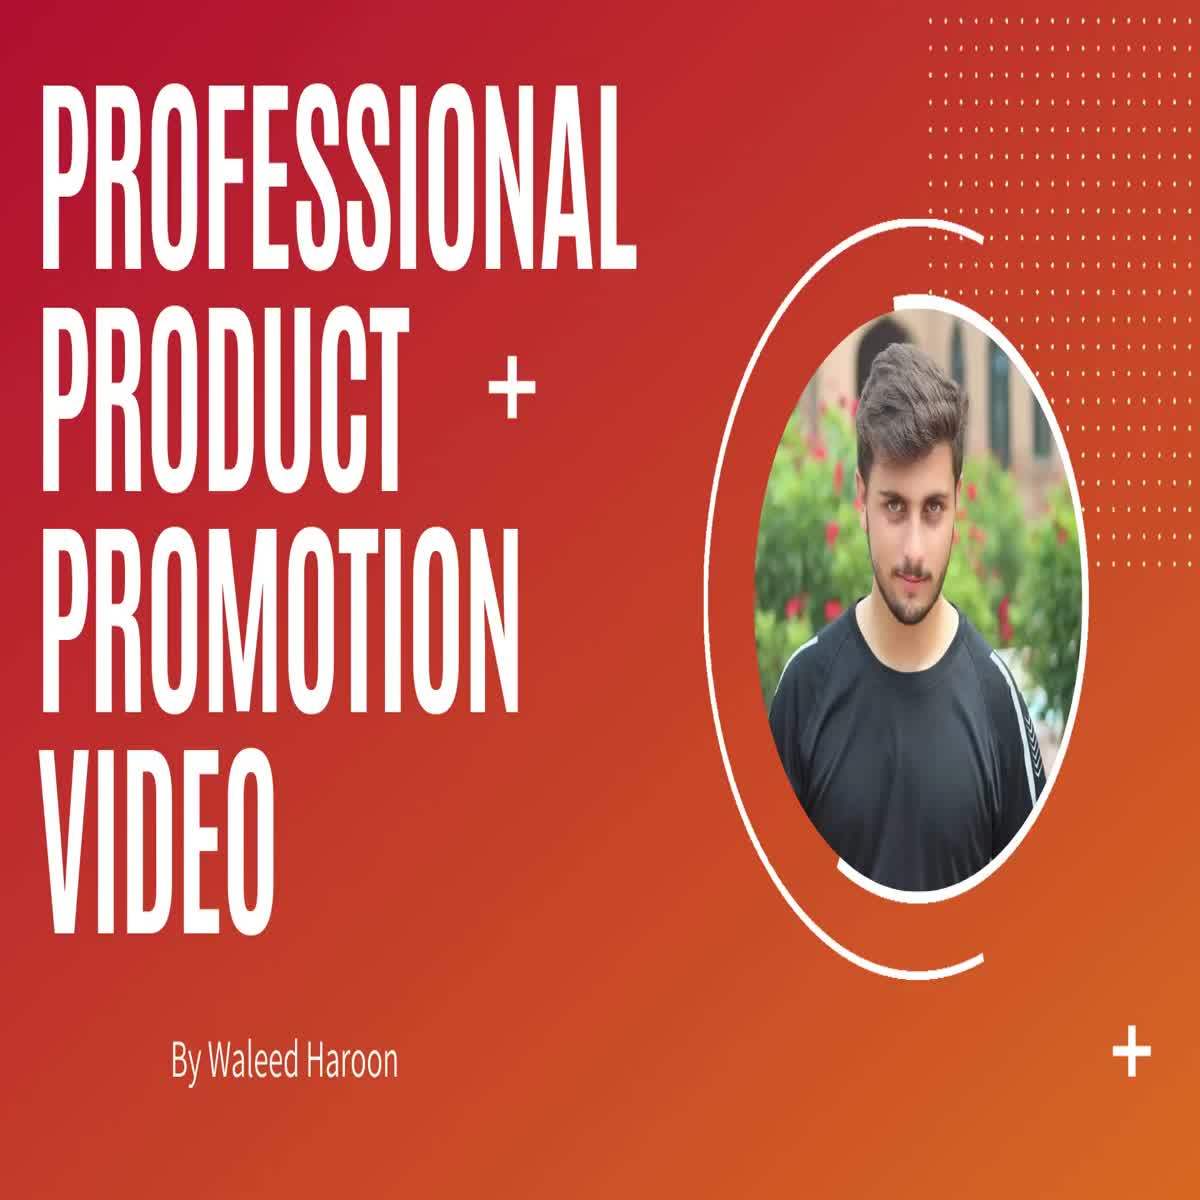 Professional Product Promotion video